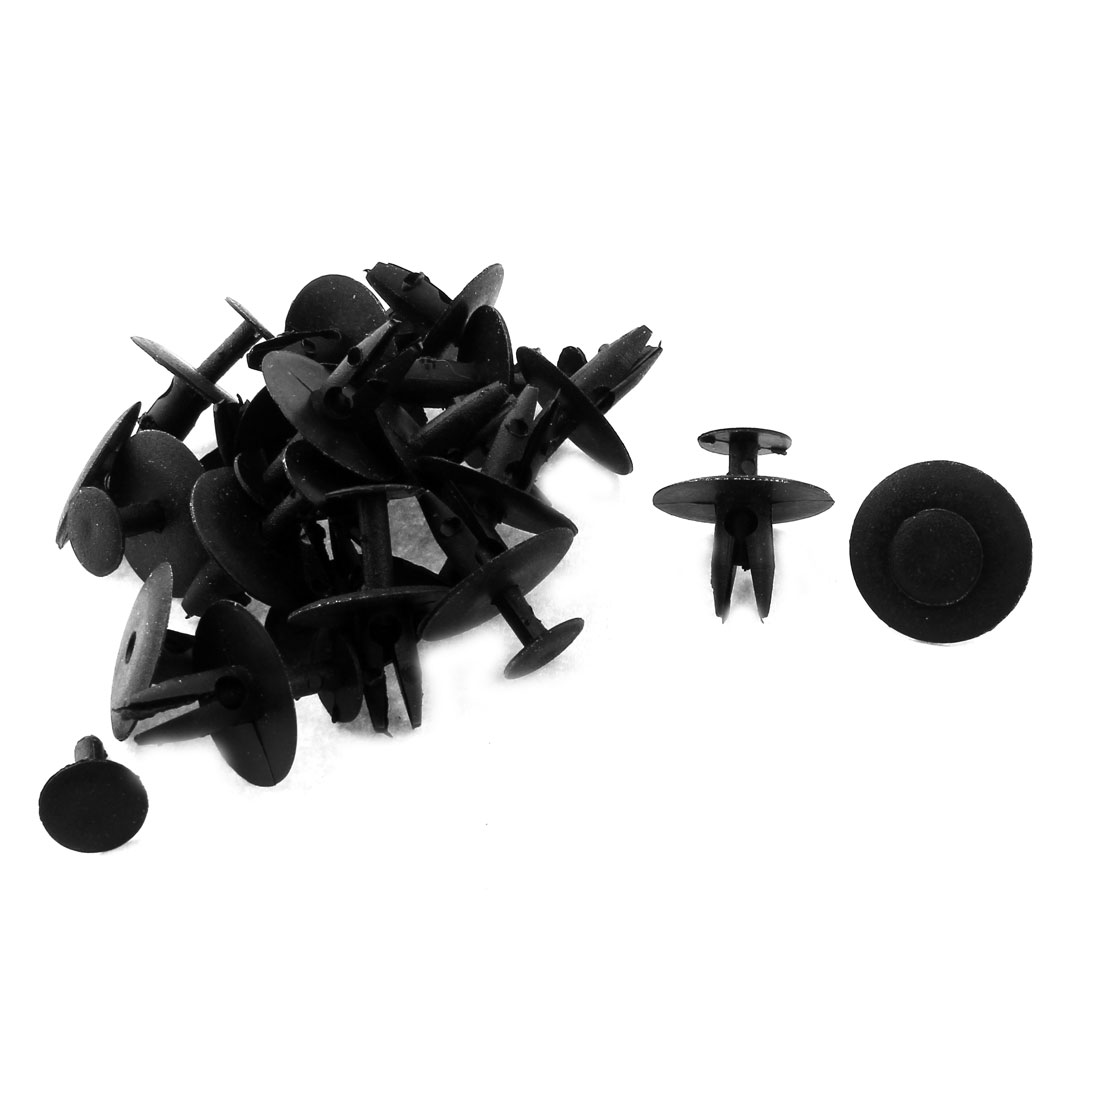 6.5mm x 21mm x 15mm Plastic Car Bumper Fender Push Clips Rivets Retainer 20pcs